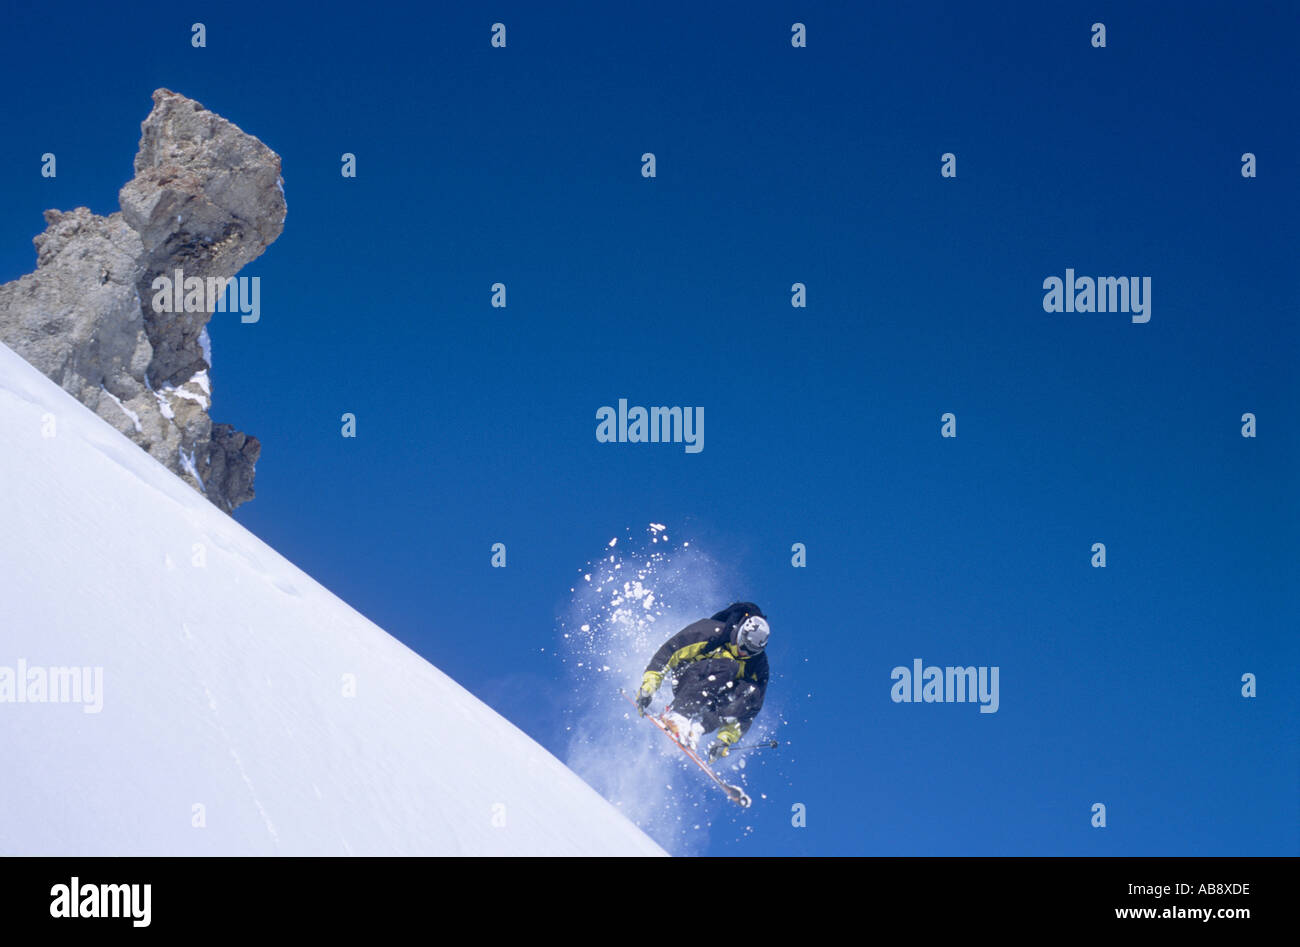 skier racing down a steep slope, jumping, leaving bizarrely shaped rock behind, France, Rhne-Alpes, Tignes. - Stock Image